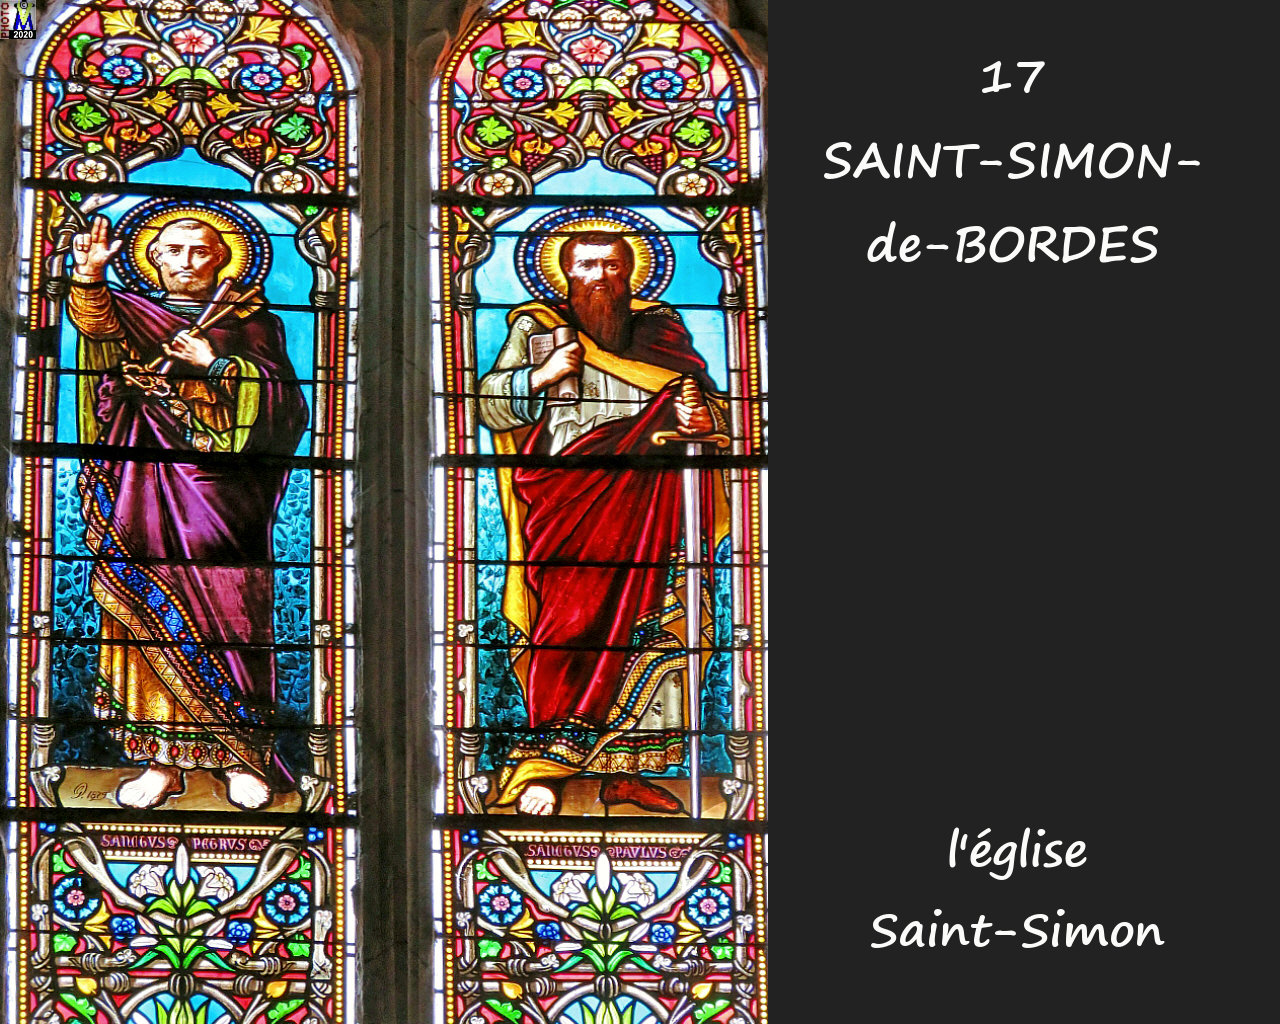 17StSIMON-BORDES_eglise_1124.jpg